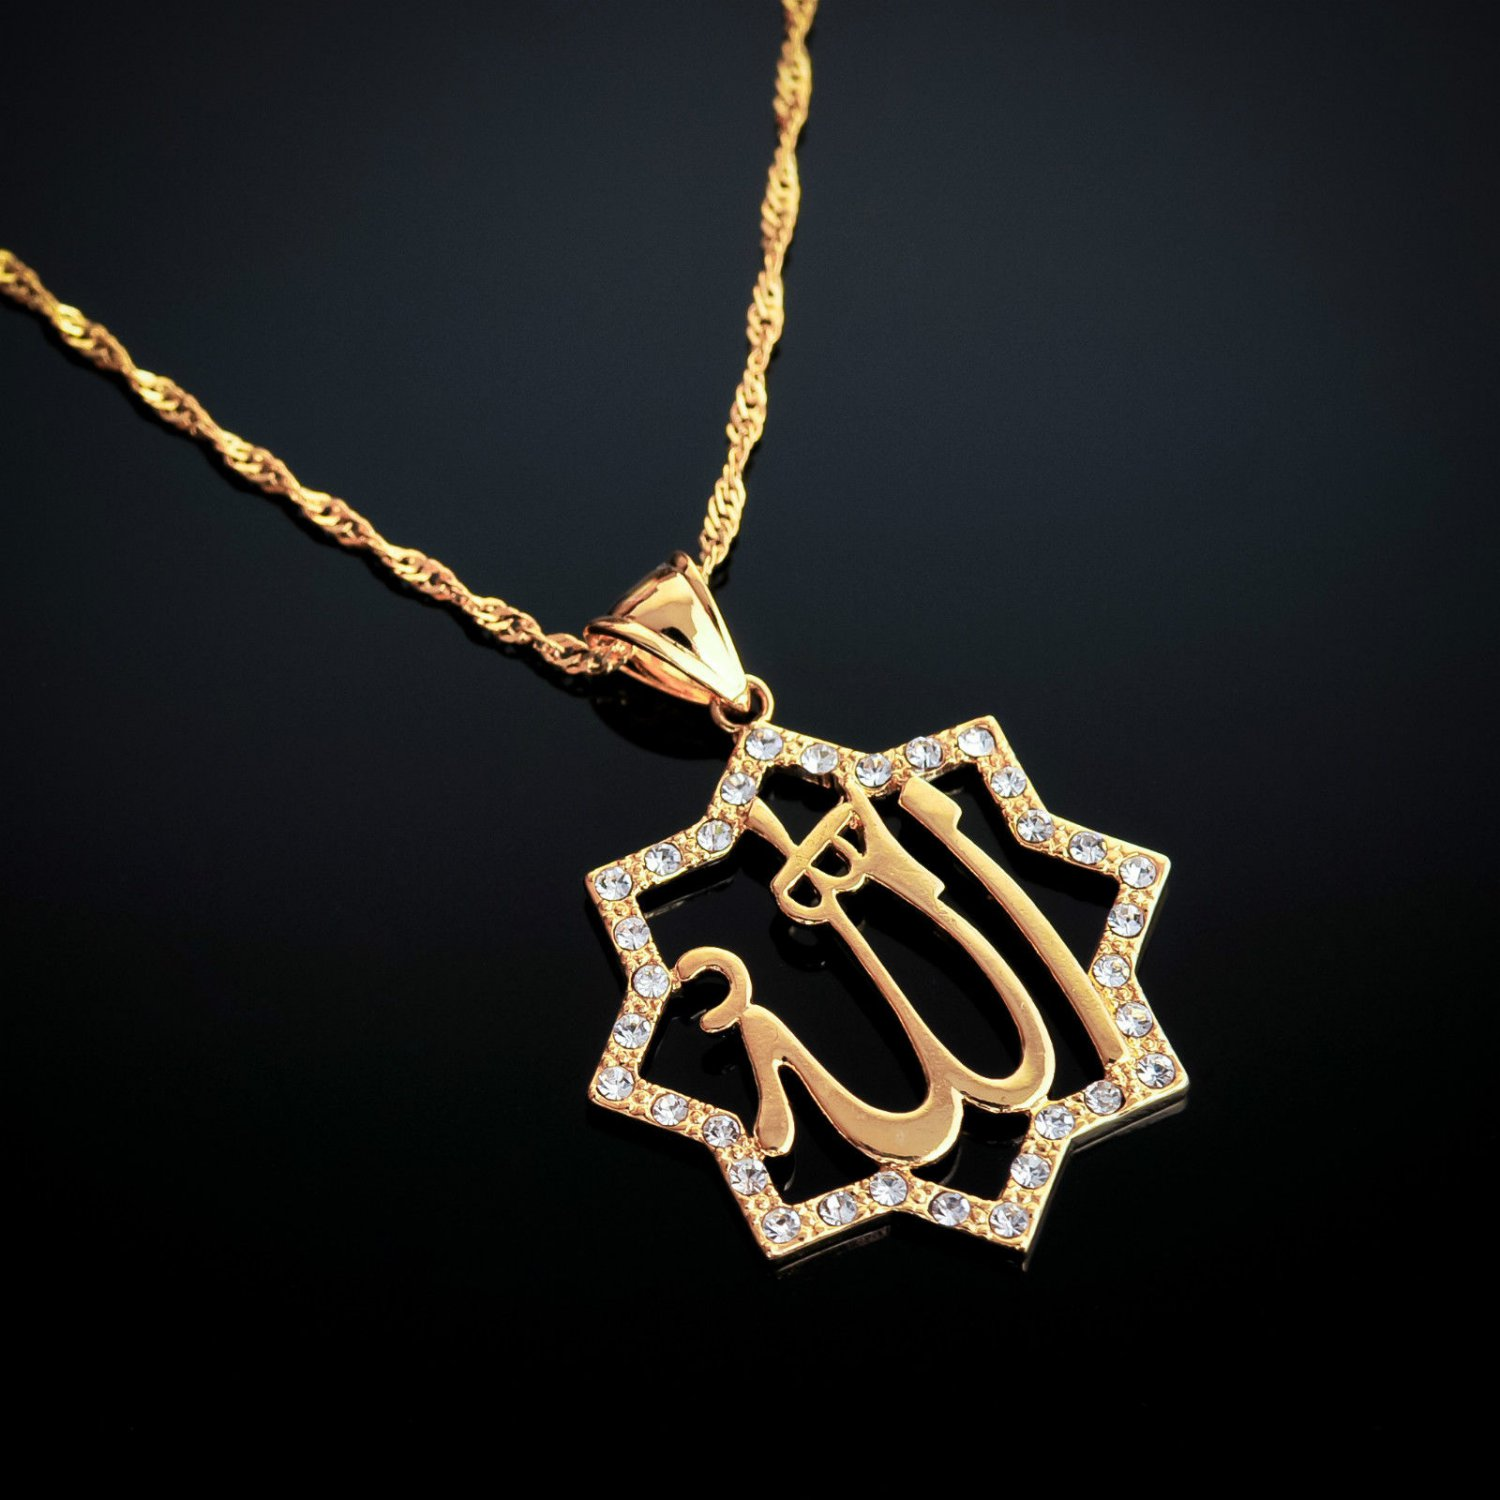 Fashion 18k gold plated Allah Islamic pendant & necklace ! Islam Jewelry & Love